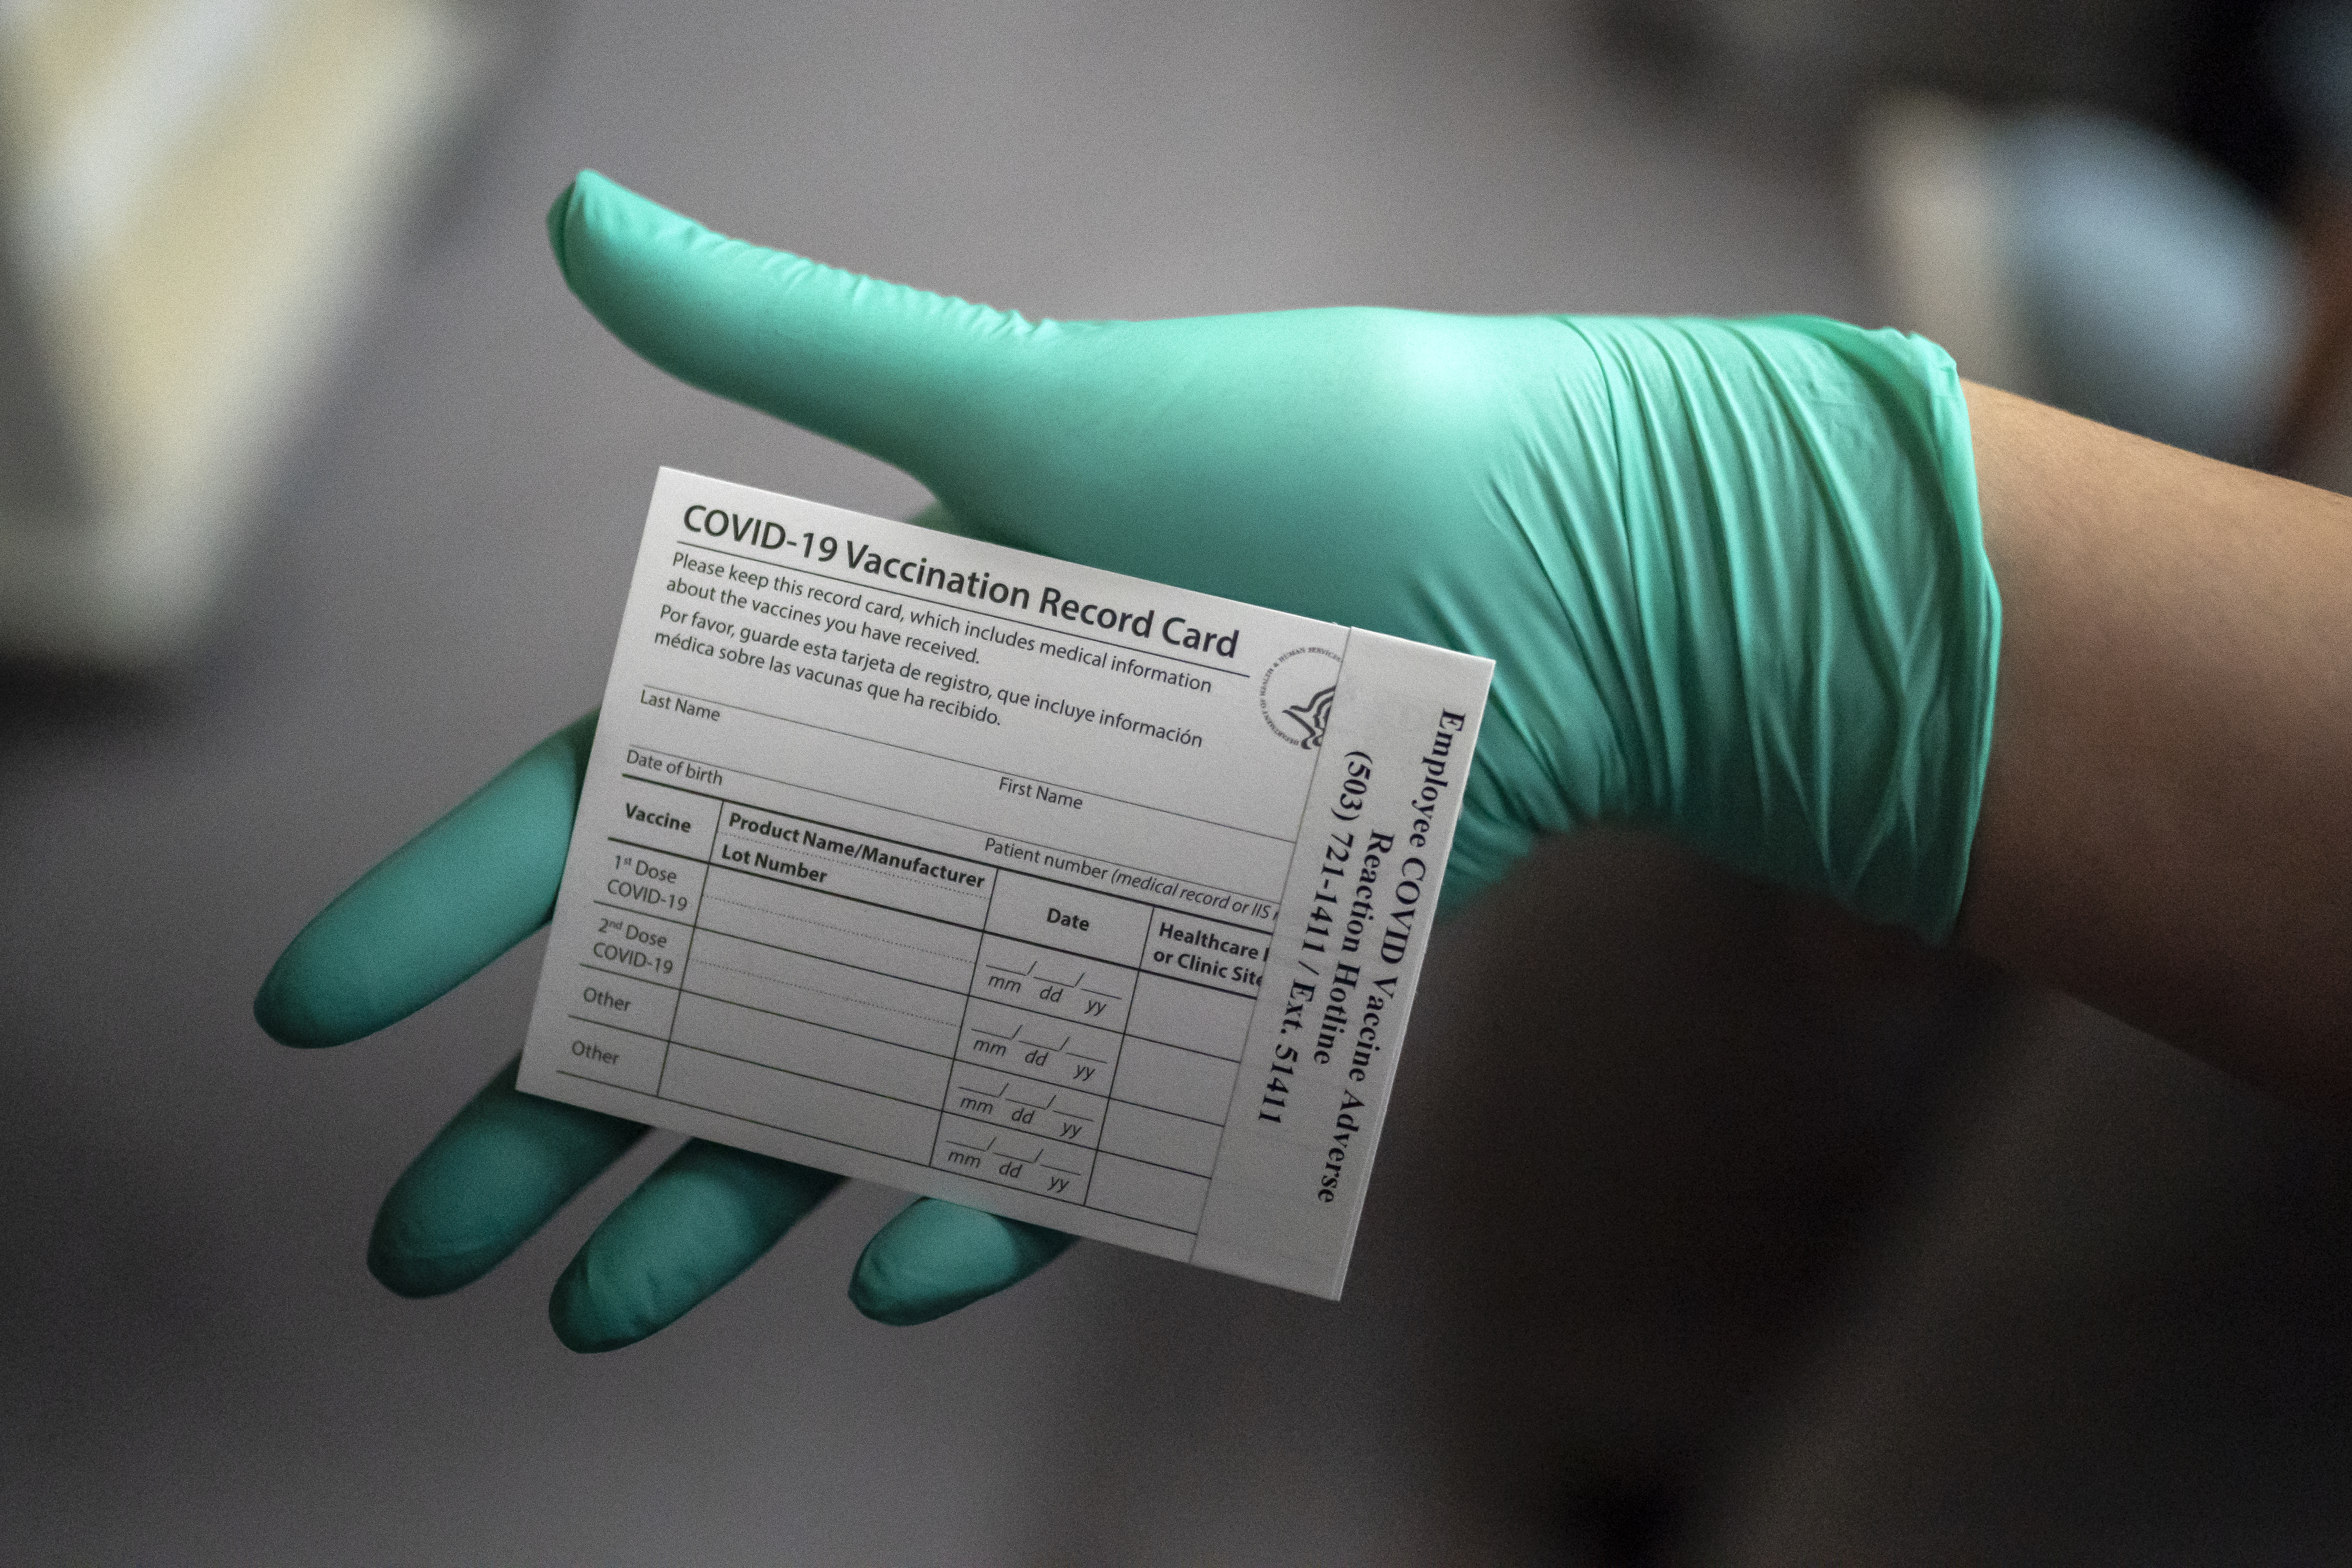 A health care worker's hand wearing a latex glove holds a Covid-19 vaccine record card at the Portland Veterans Affairs Medical Center.